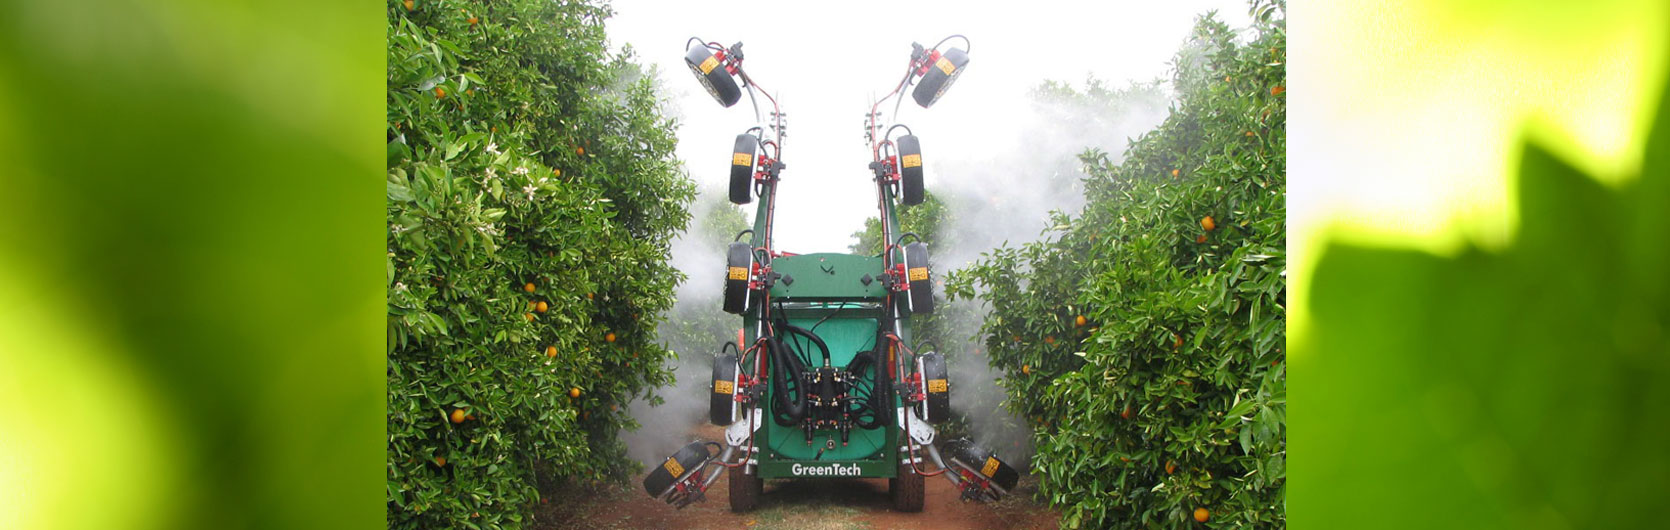 hero_4000L-Tree-Spray-System-1.jpg